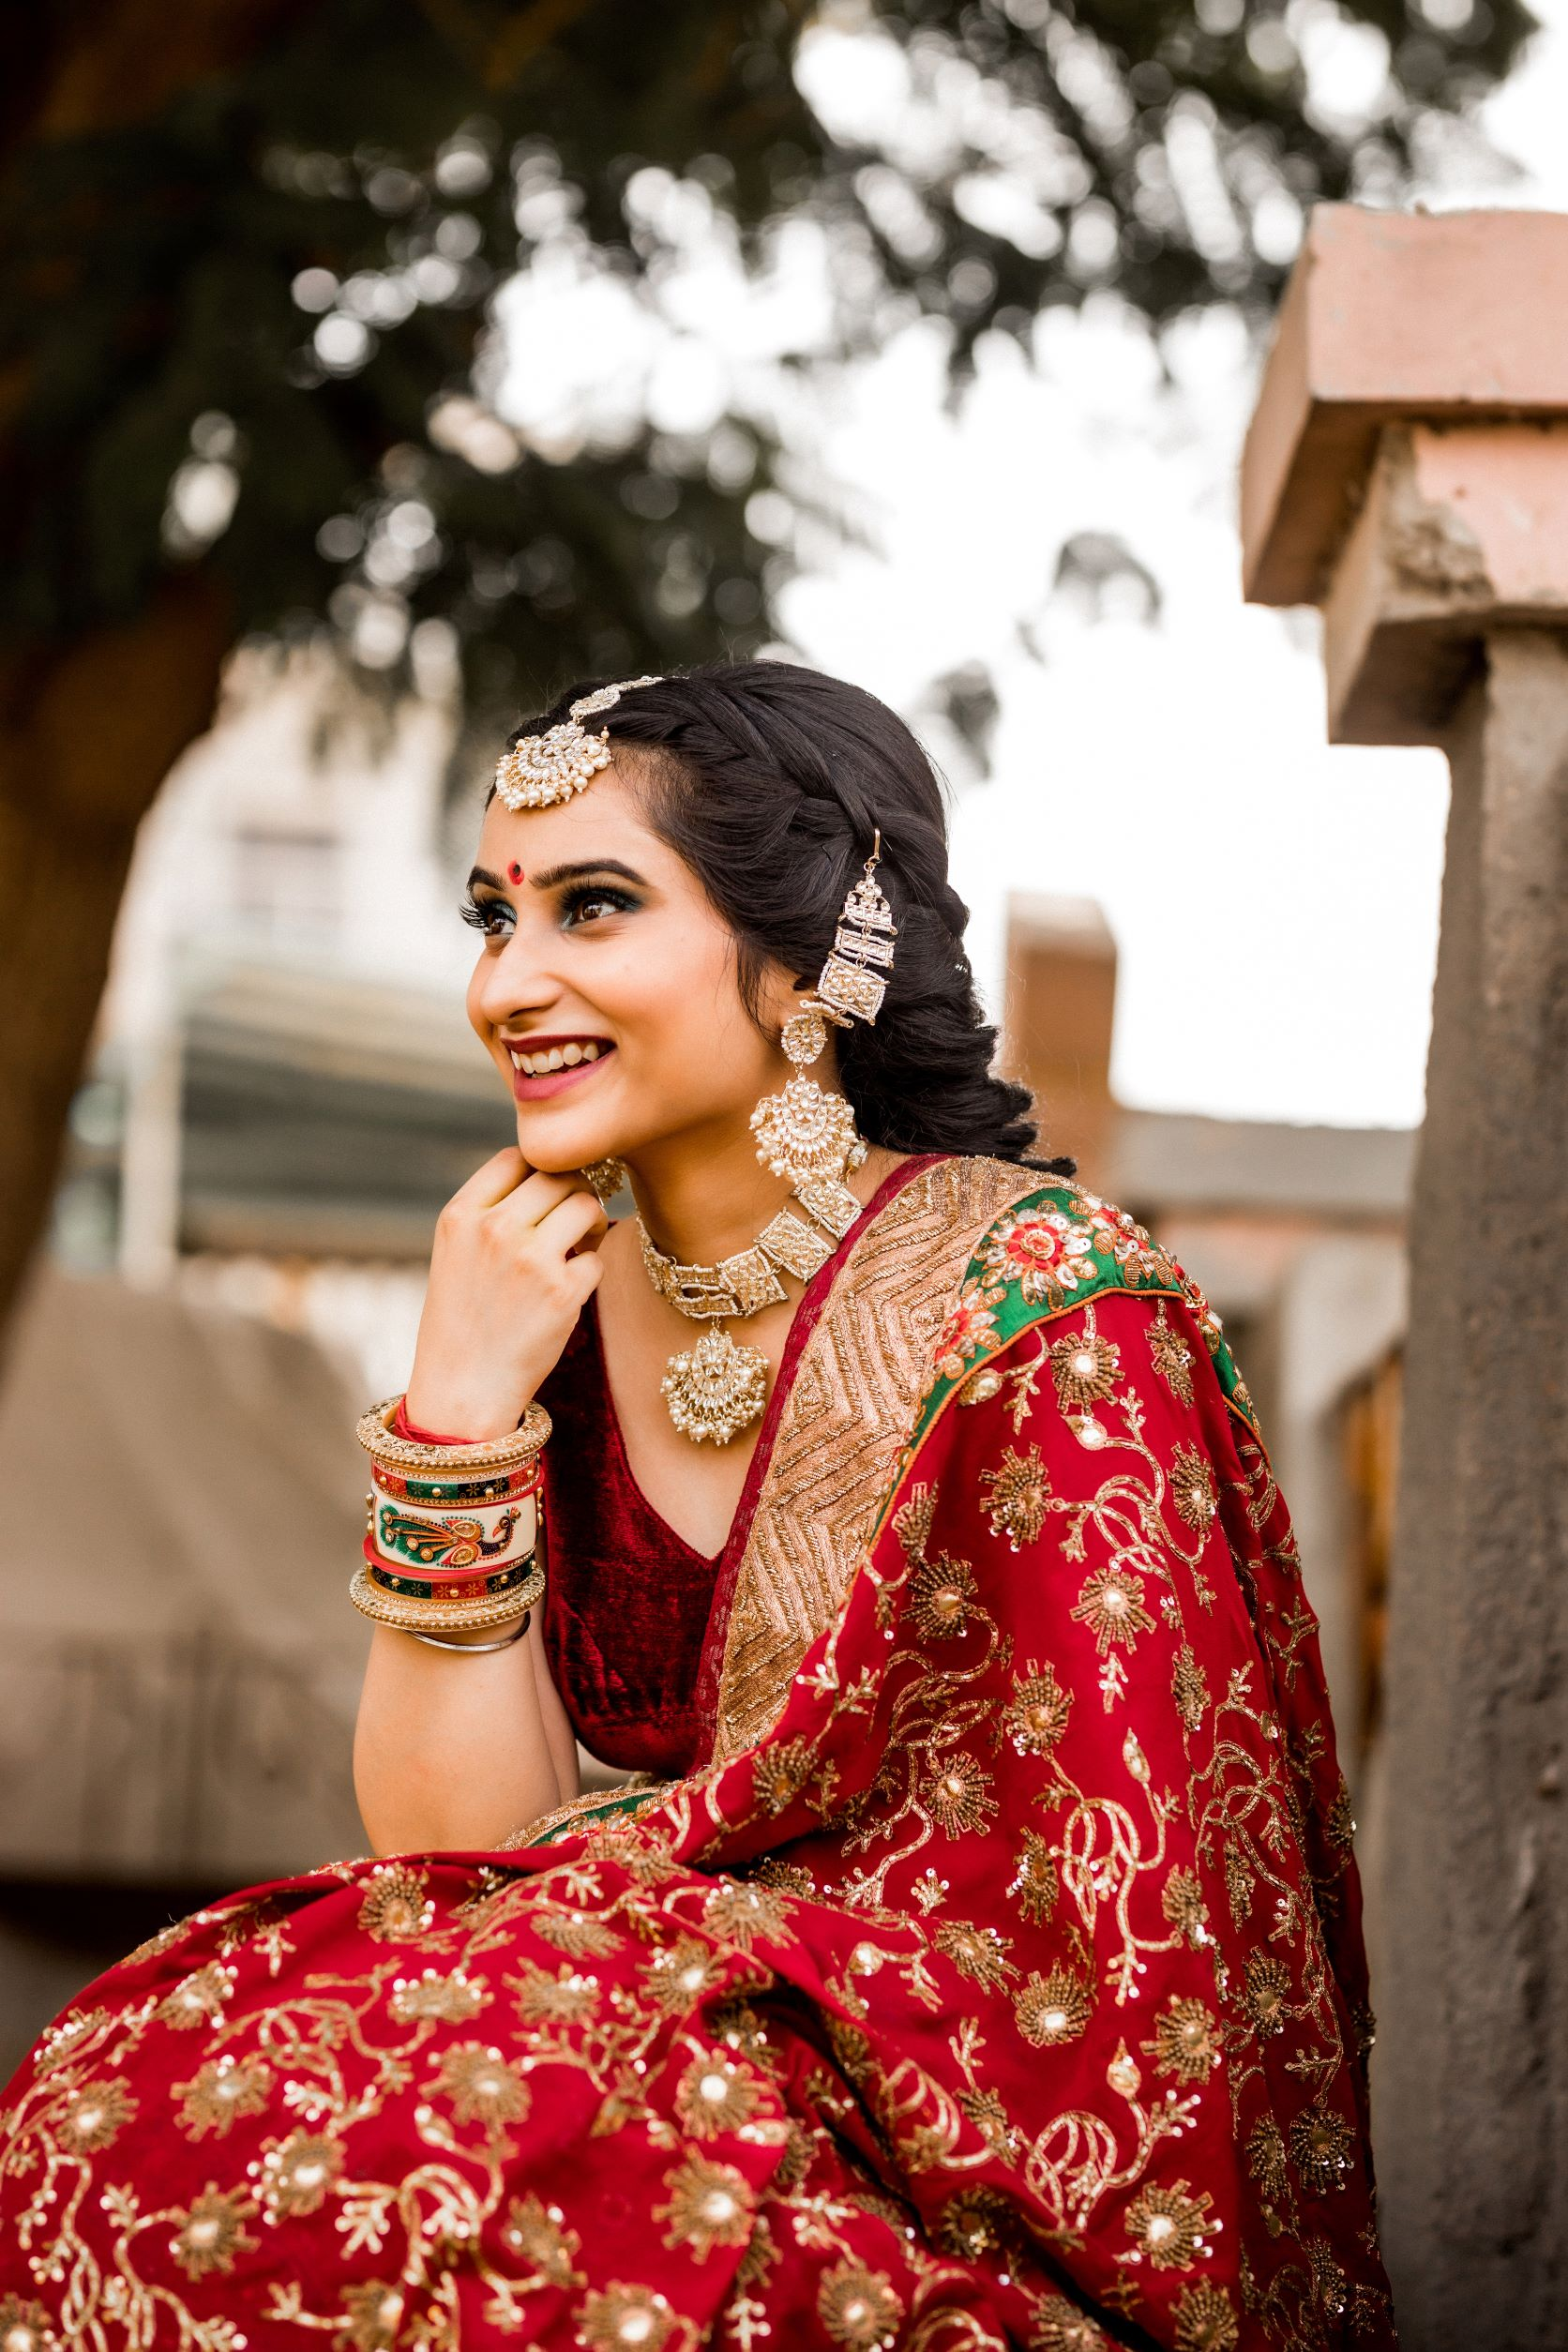 candid shot of the bride in red bridal lehenga